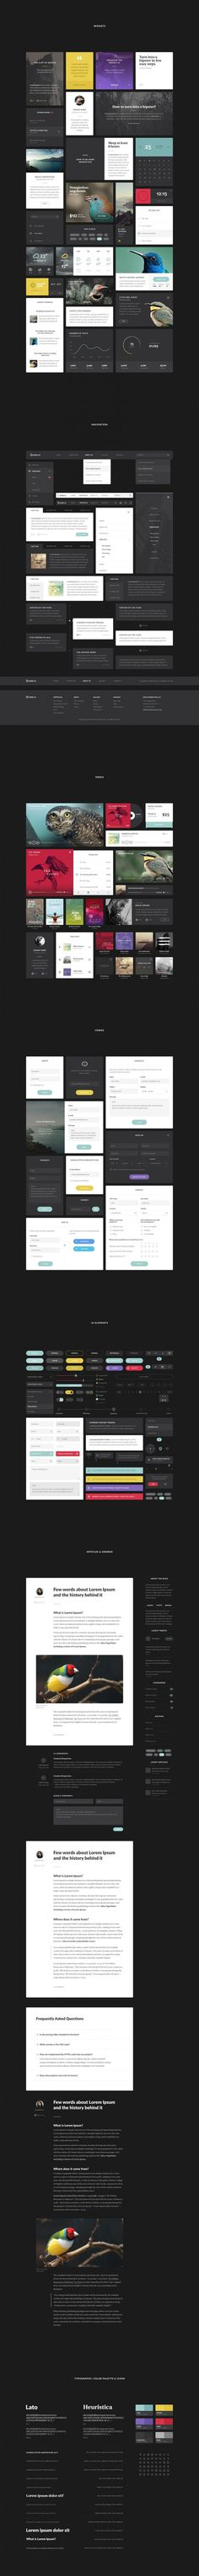 Aves UI Kit #ui kit #interface #design